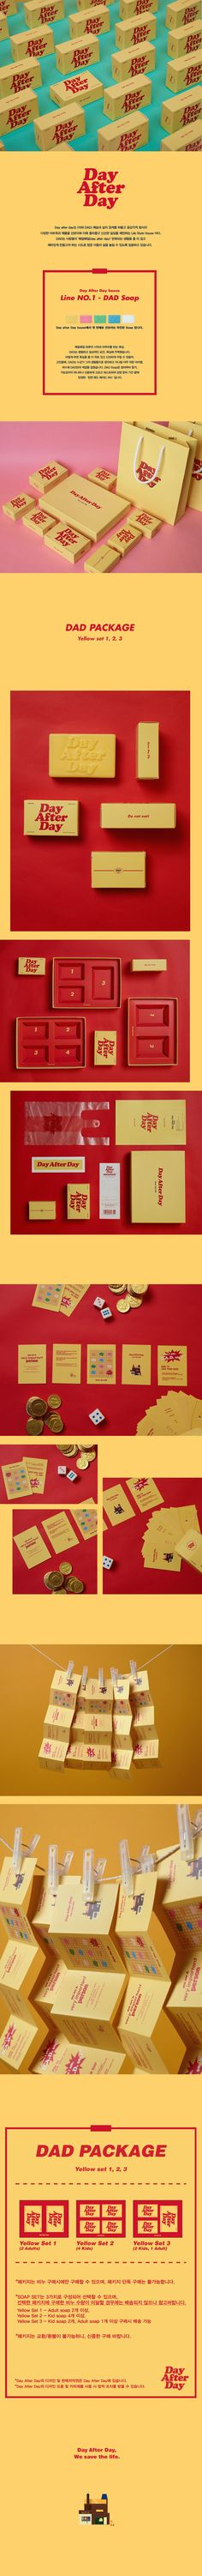 This picture's color tone is warm color(red and yellow) Web Design, Media Design, Retro Design, Graphic Design Posters, Graphic Design Inspiration, Food Packaging Design, Branding Design, Promotional Design, Business Logo Design